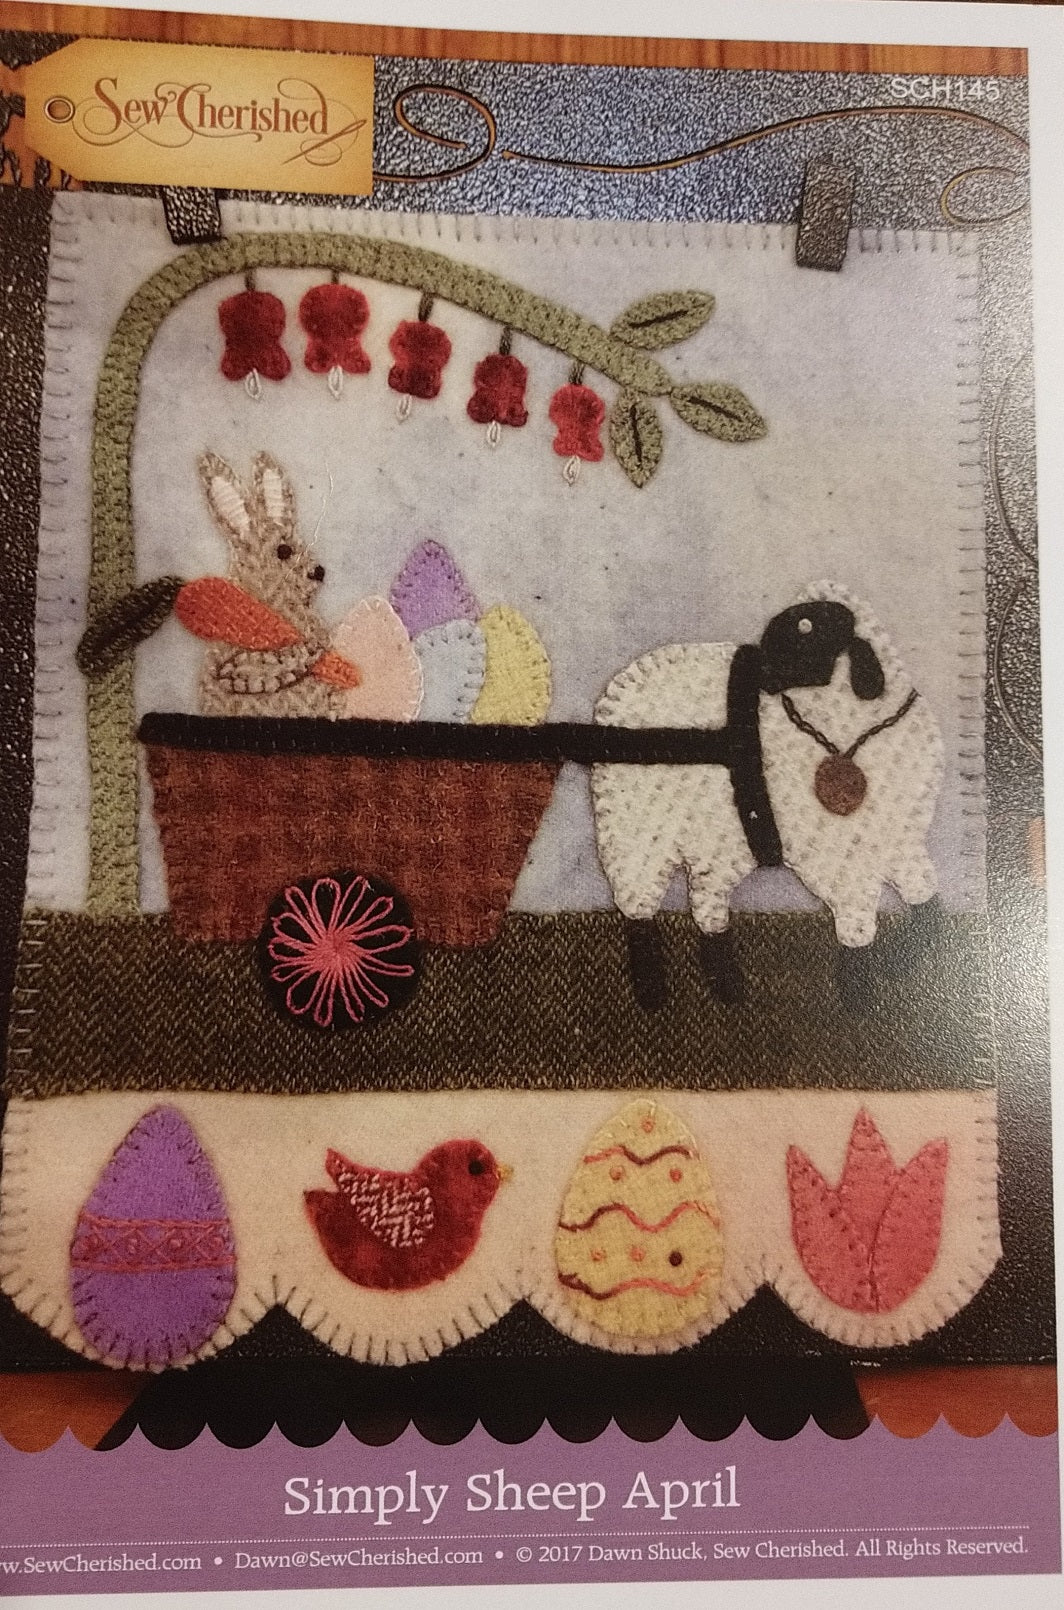 Simply Sheep April by Sew Cherished